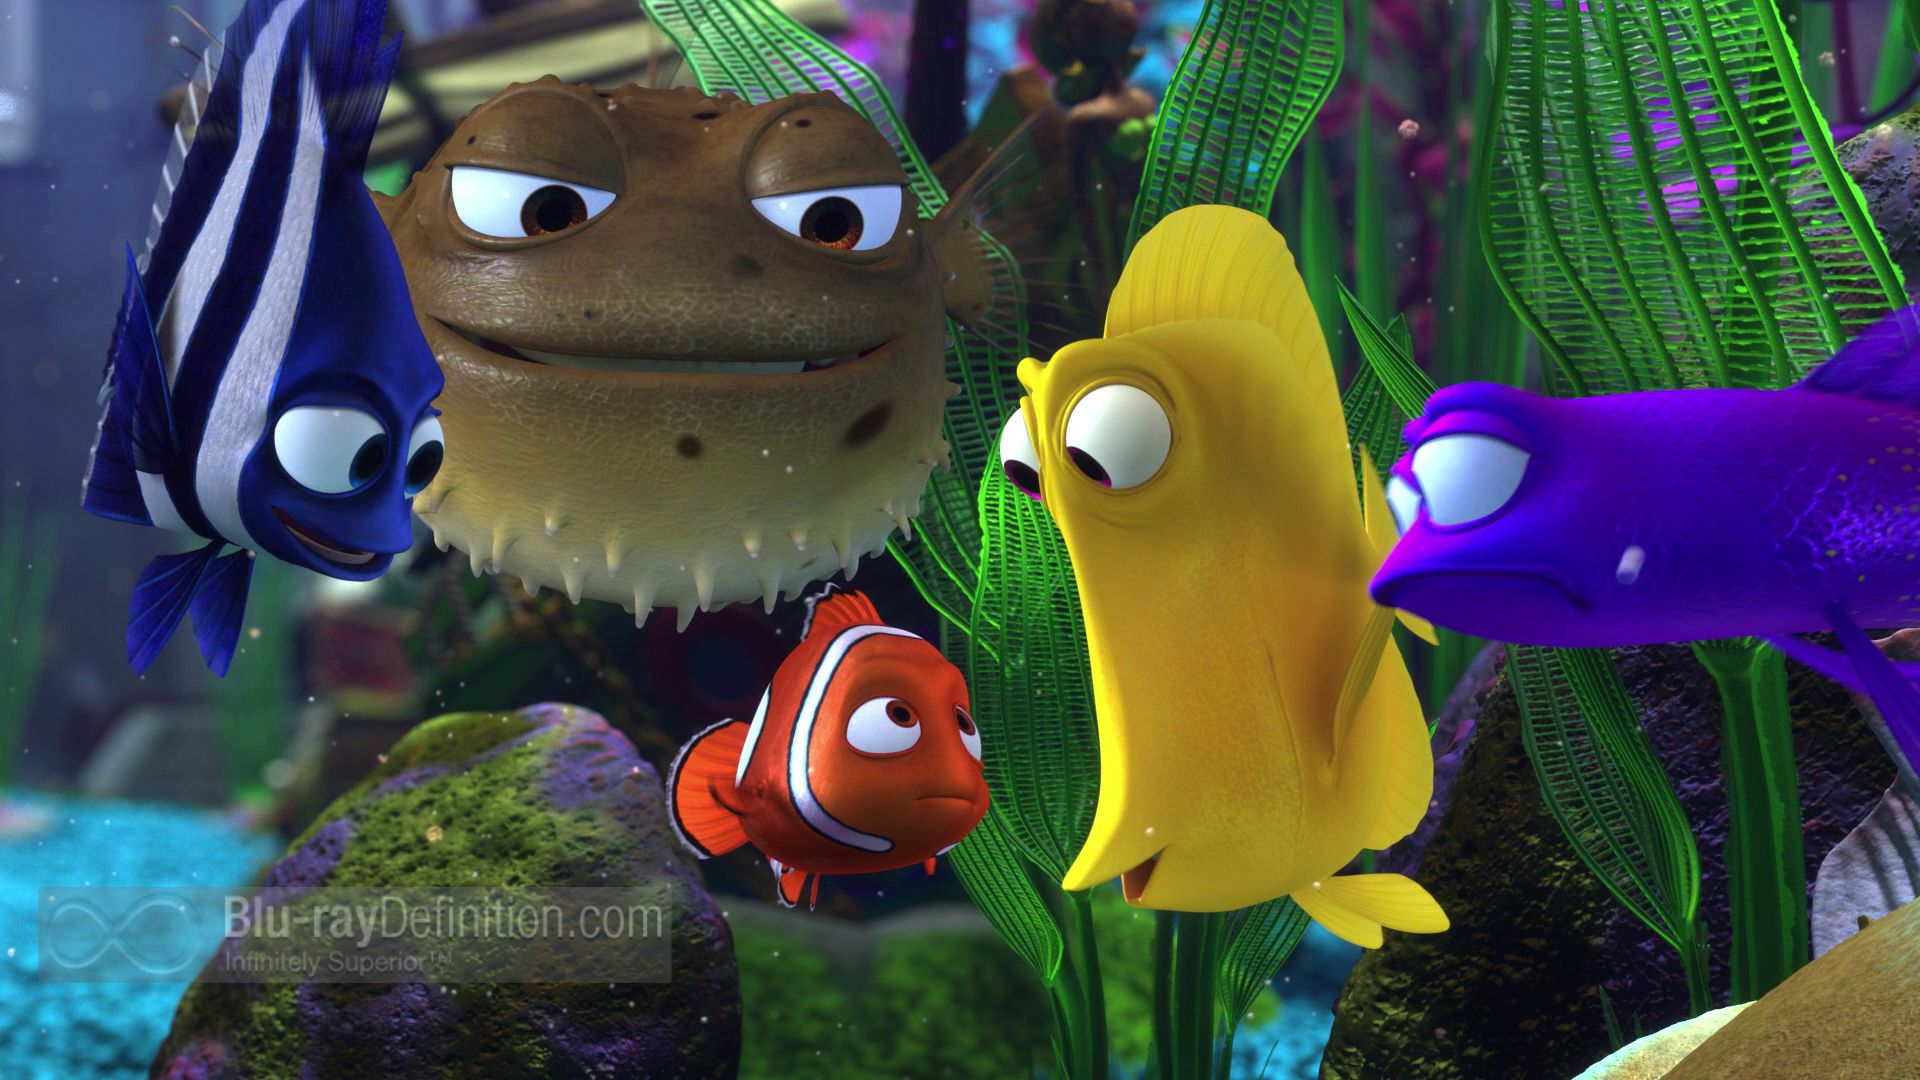 Fish in nemo aquarium - The 10 Best Images About Finding Nemo On Pinterest Finding Nemo Fish Tank Disney Wallpaper And Underwater